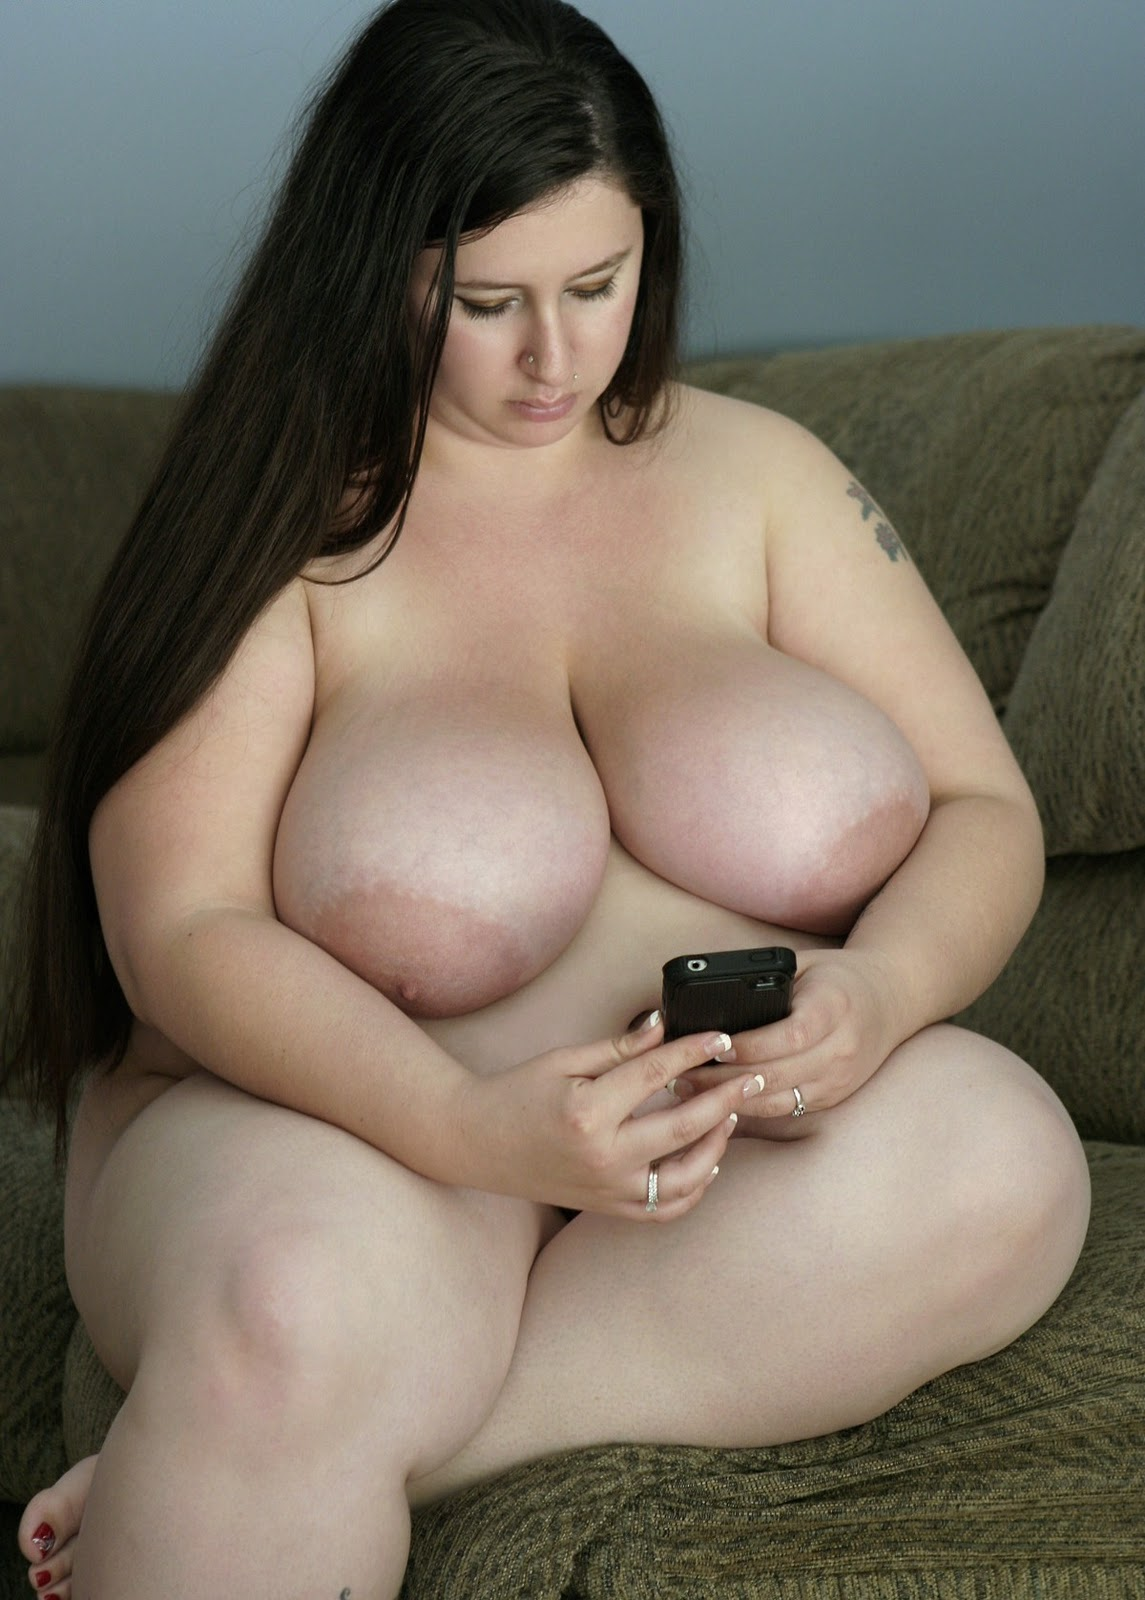 Not simple Chunky hot chick nude are not